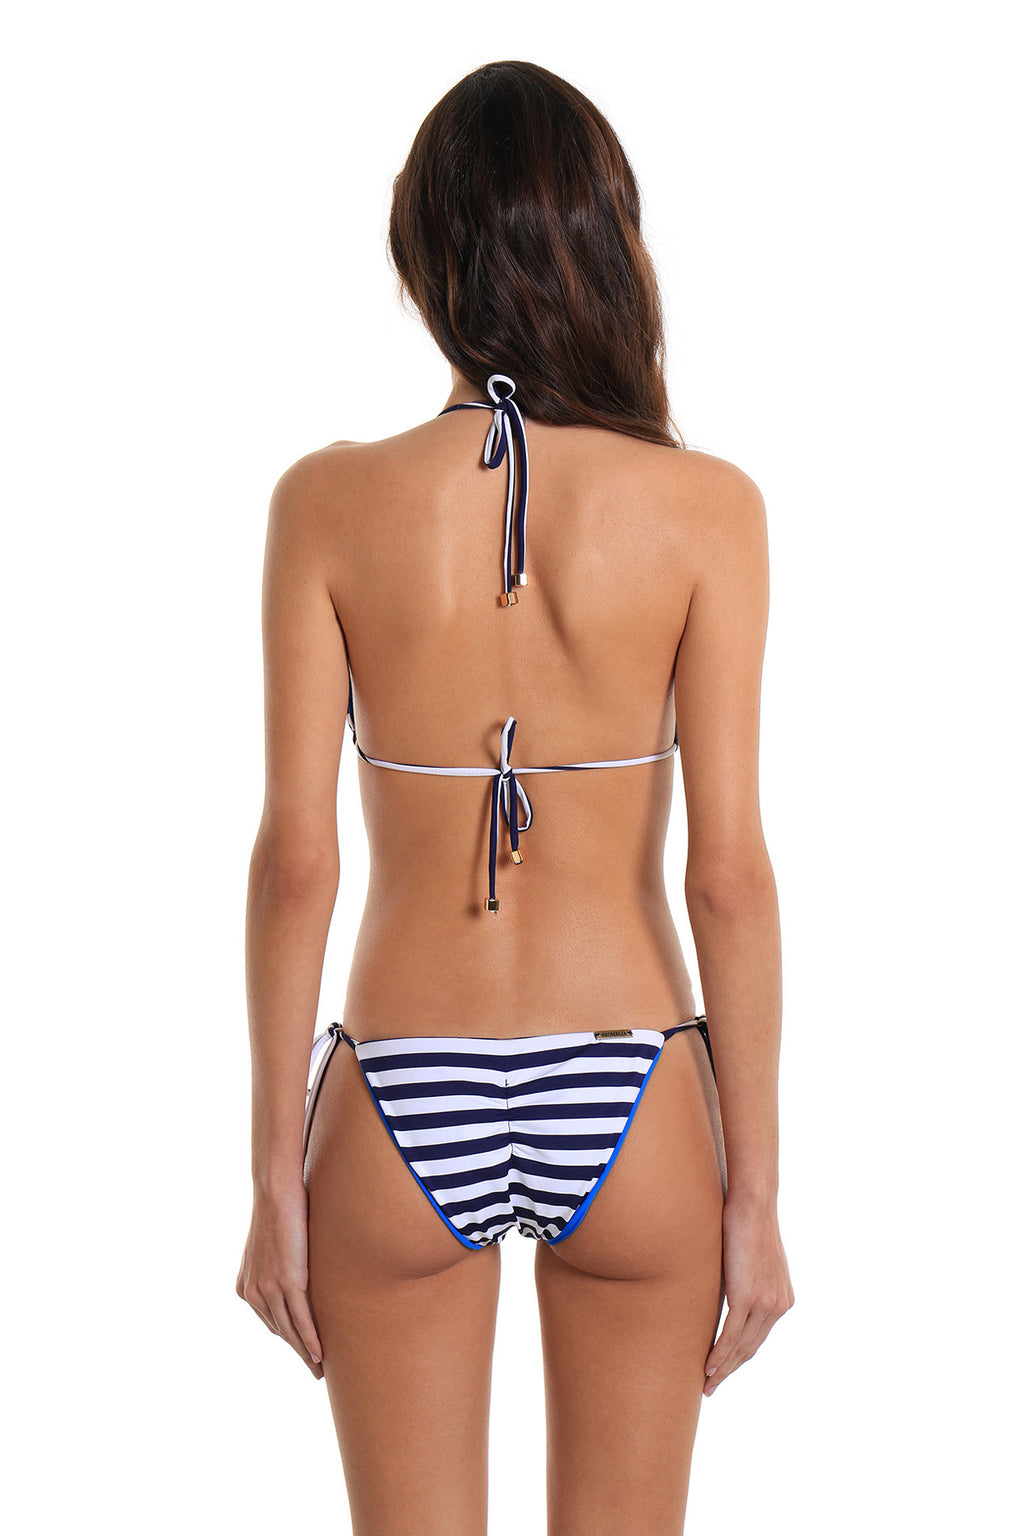 Bikini Two-Piece Swimsuit Leme Classic Stripes